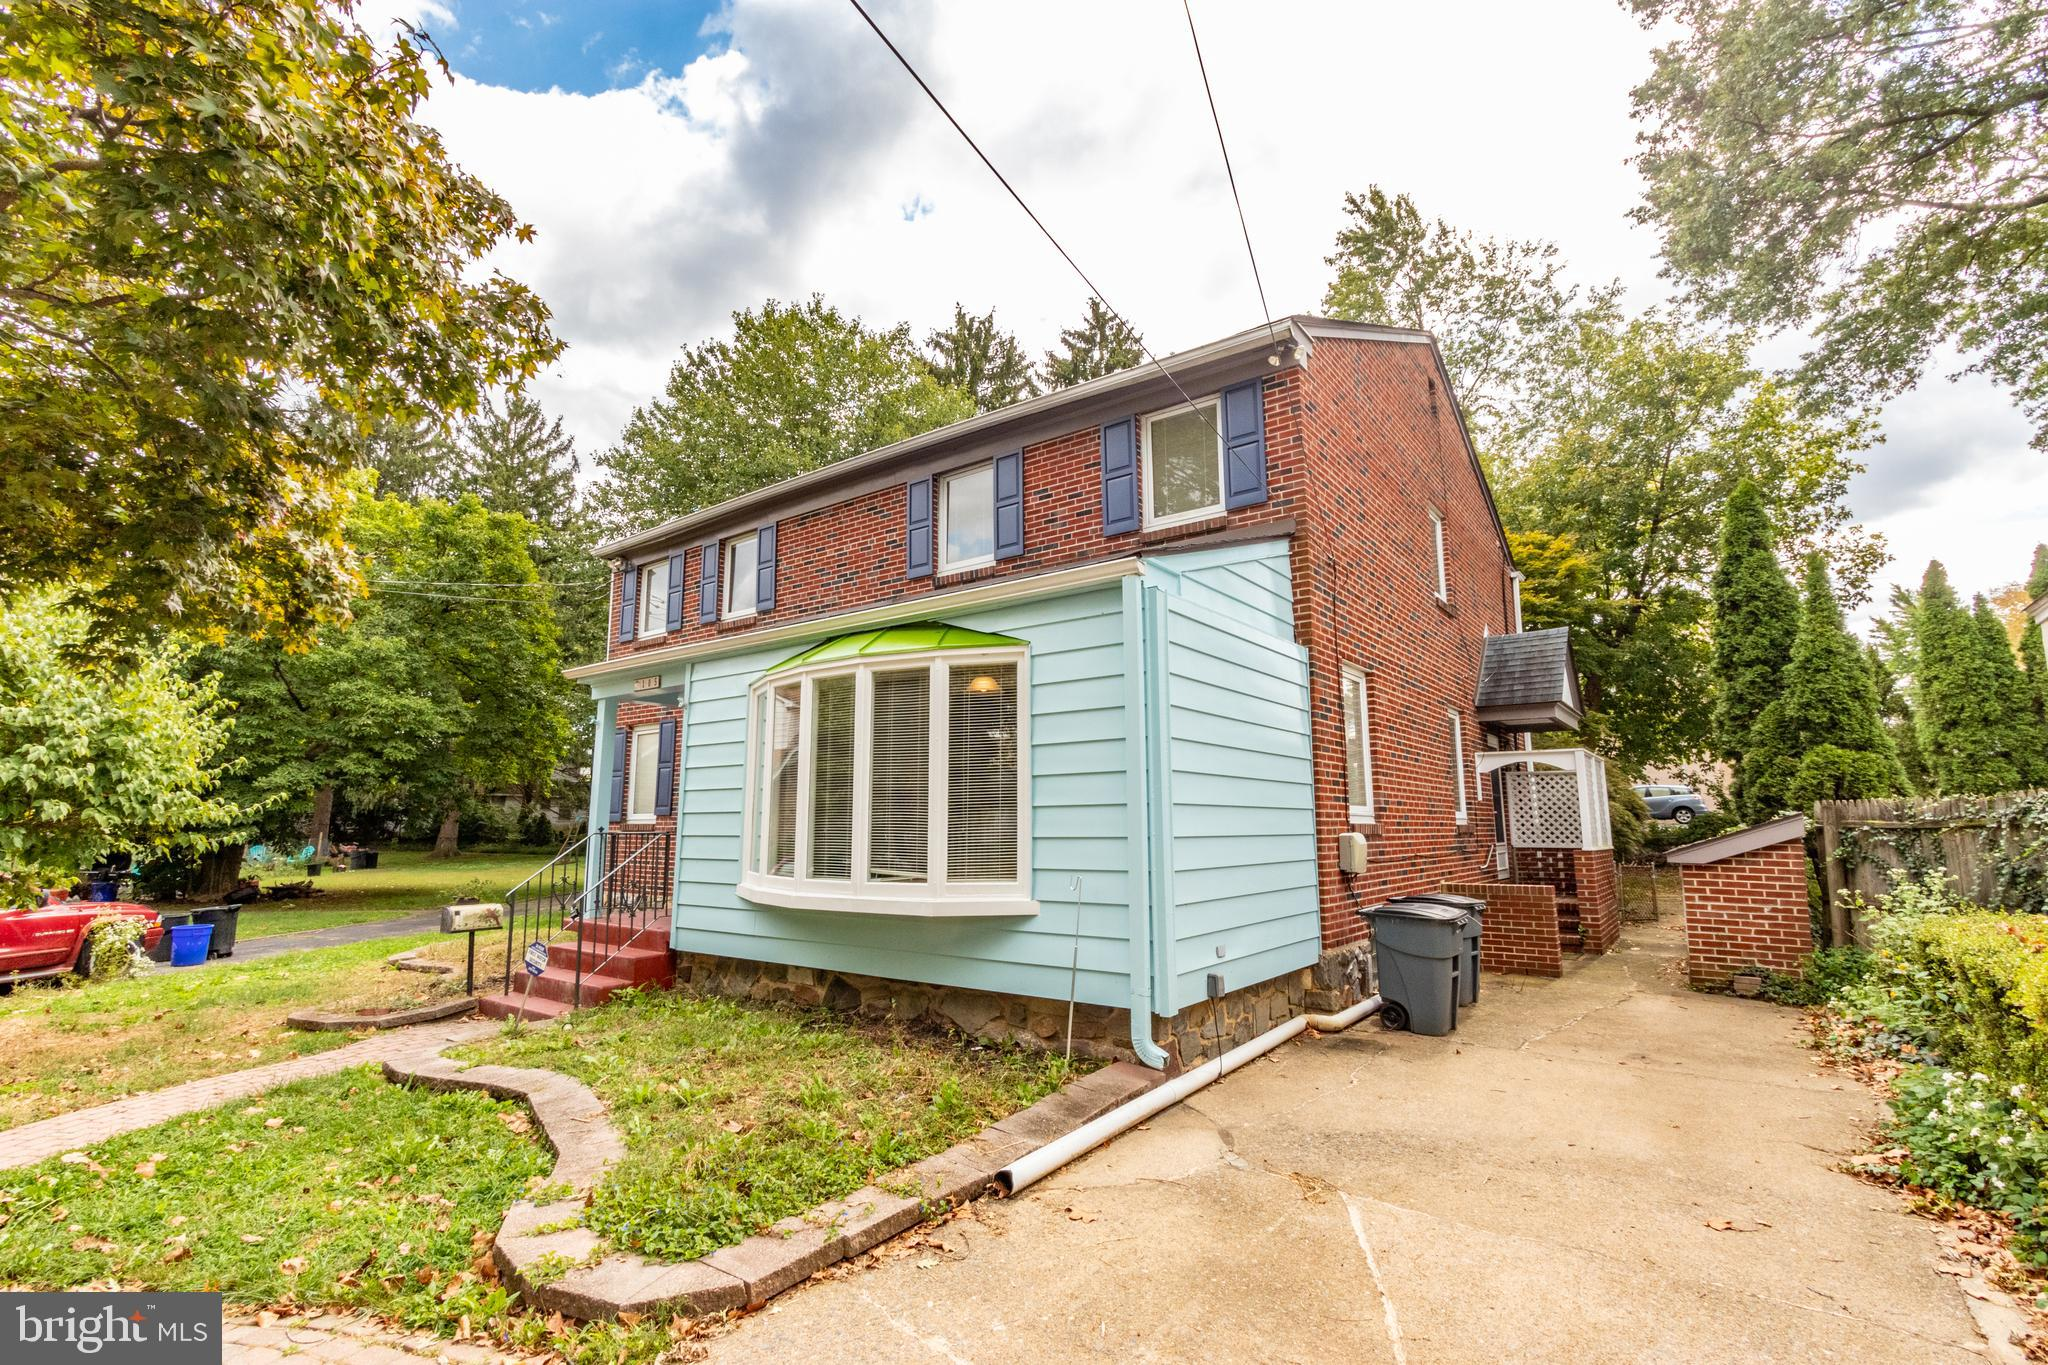 105 MAPLEWOOD AVENUE, UPPER DARBY, PA 19082